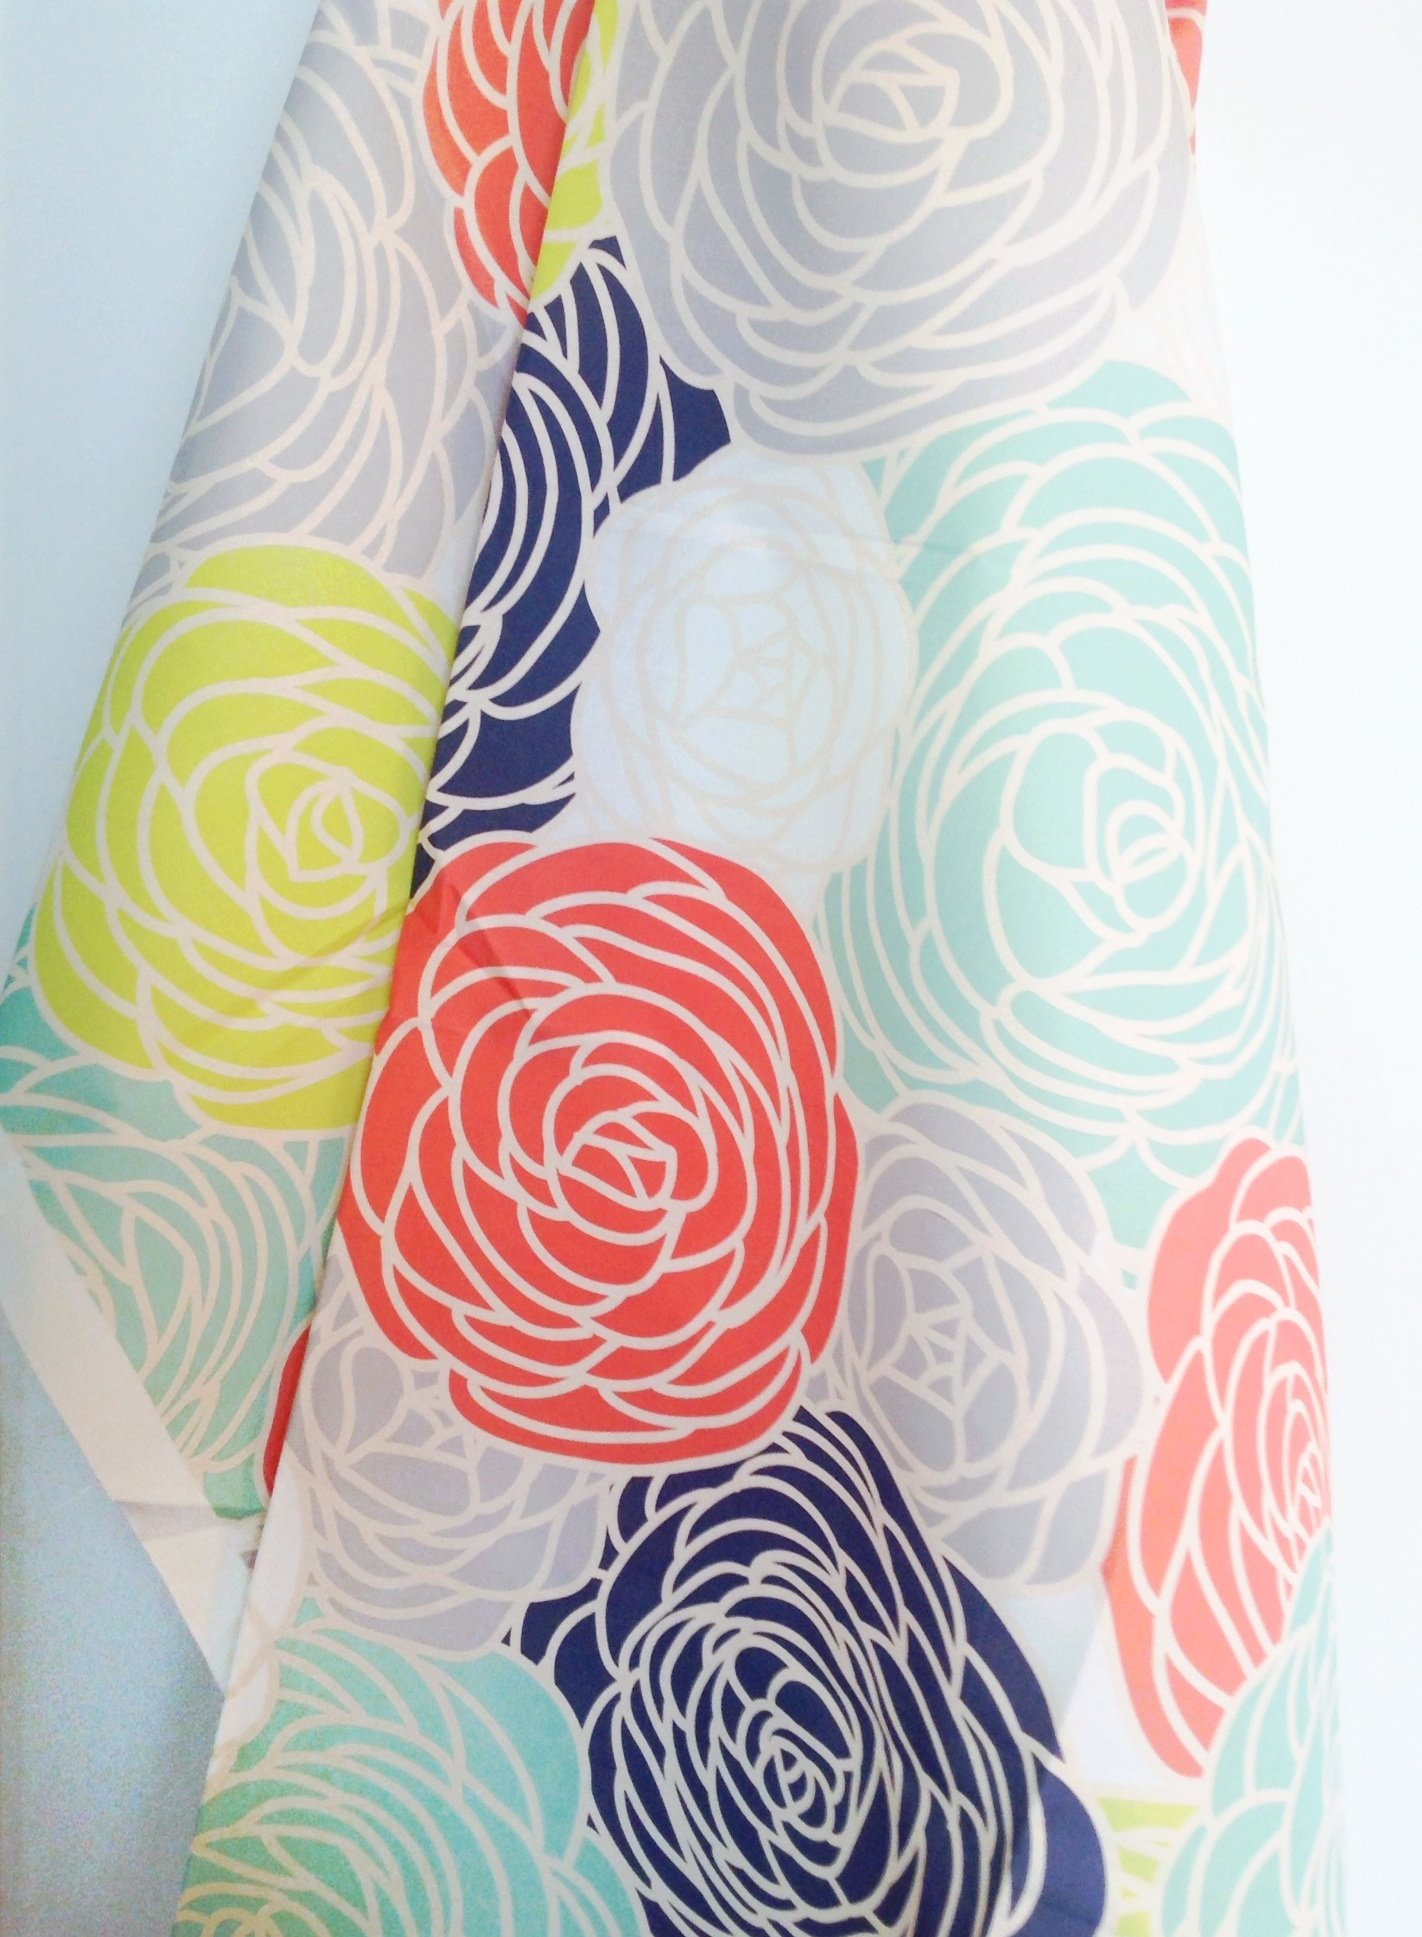 popular colors of navy mint coral citron green and light gray 1422x1937